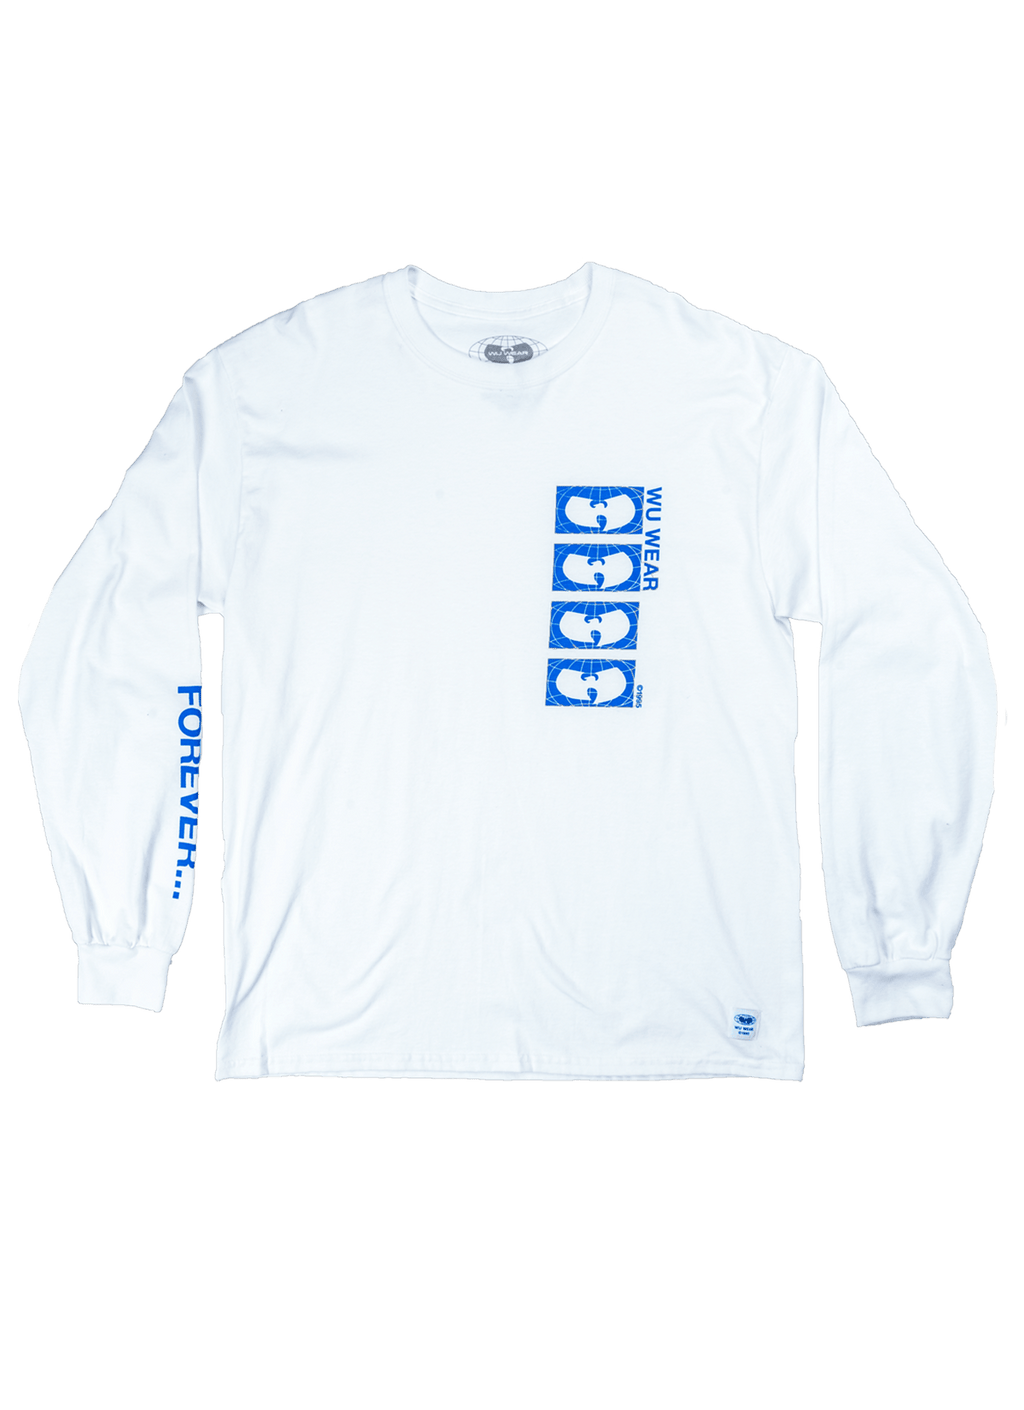 FOREVER LOGO LONG SLEEVE SHIRT - WHITE - Wu Wear